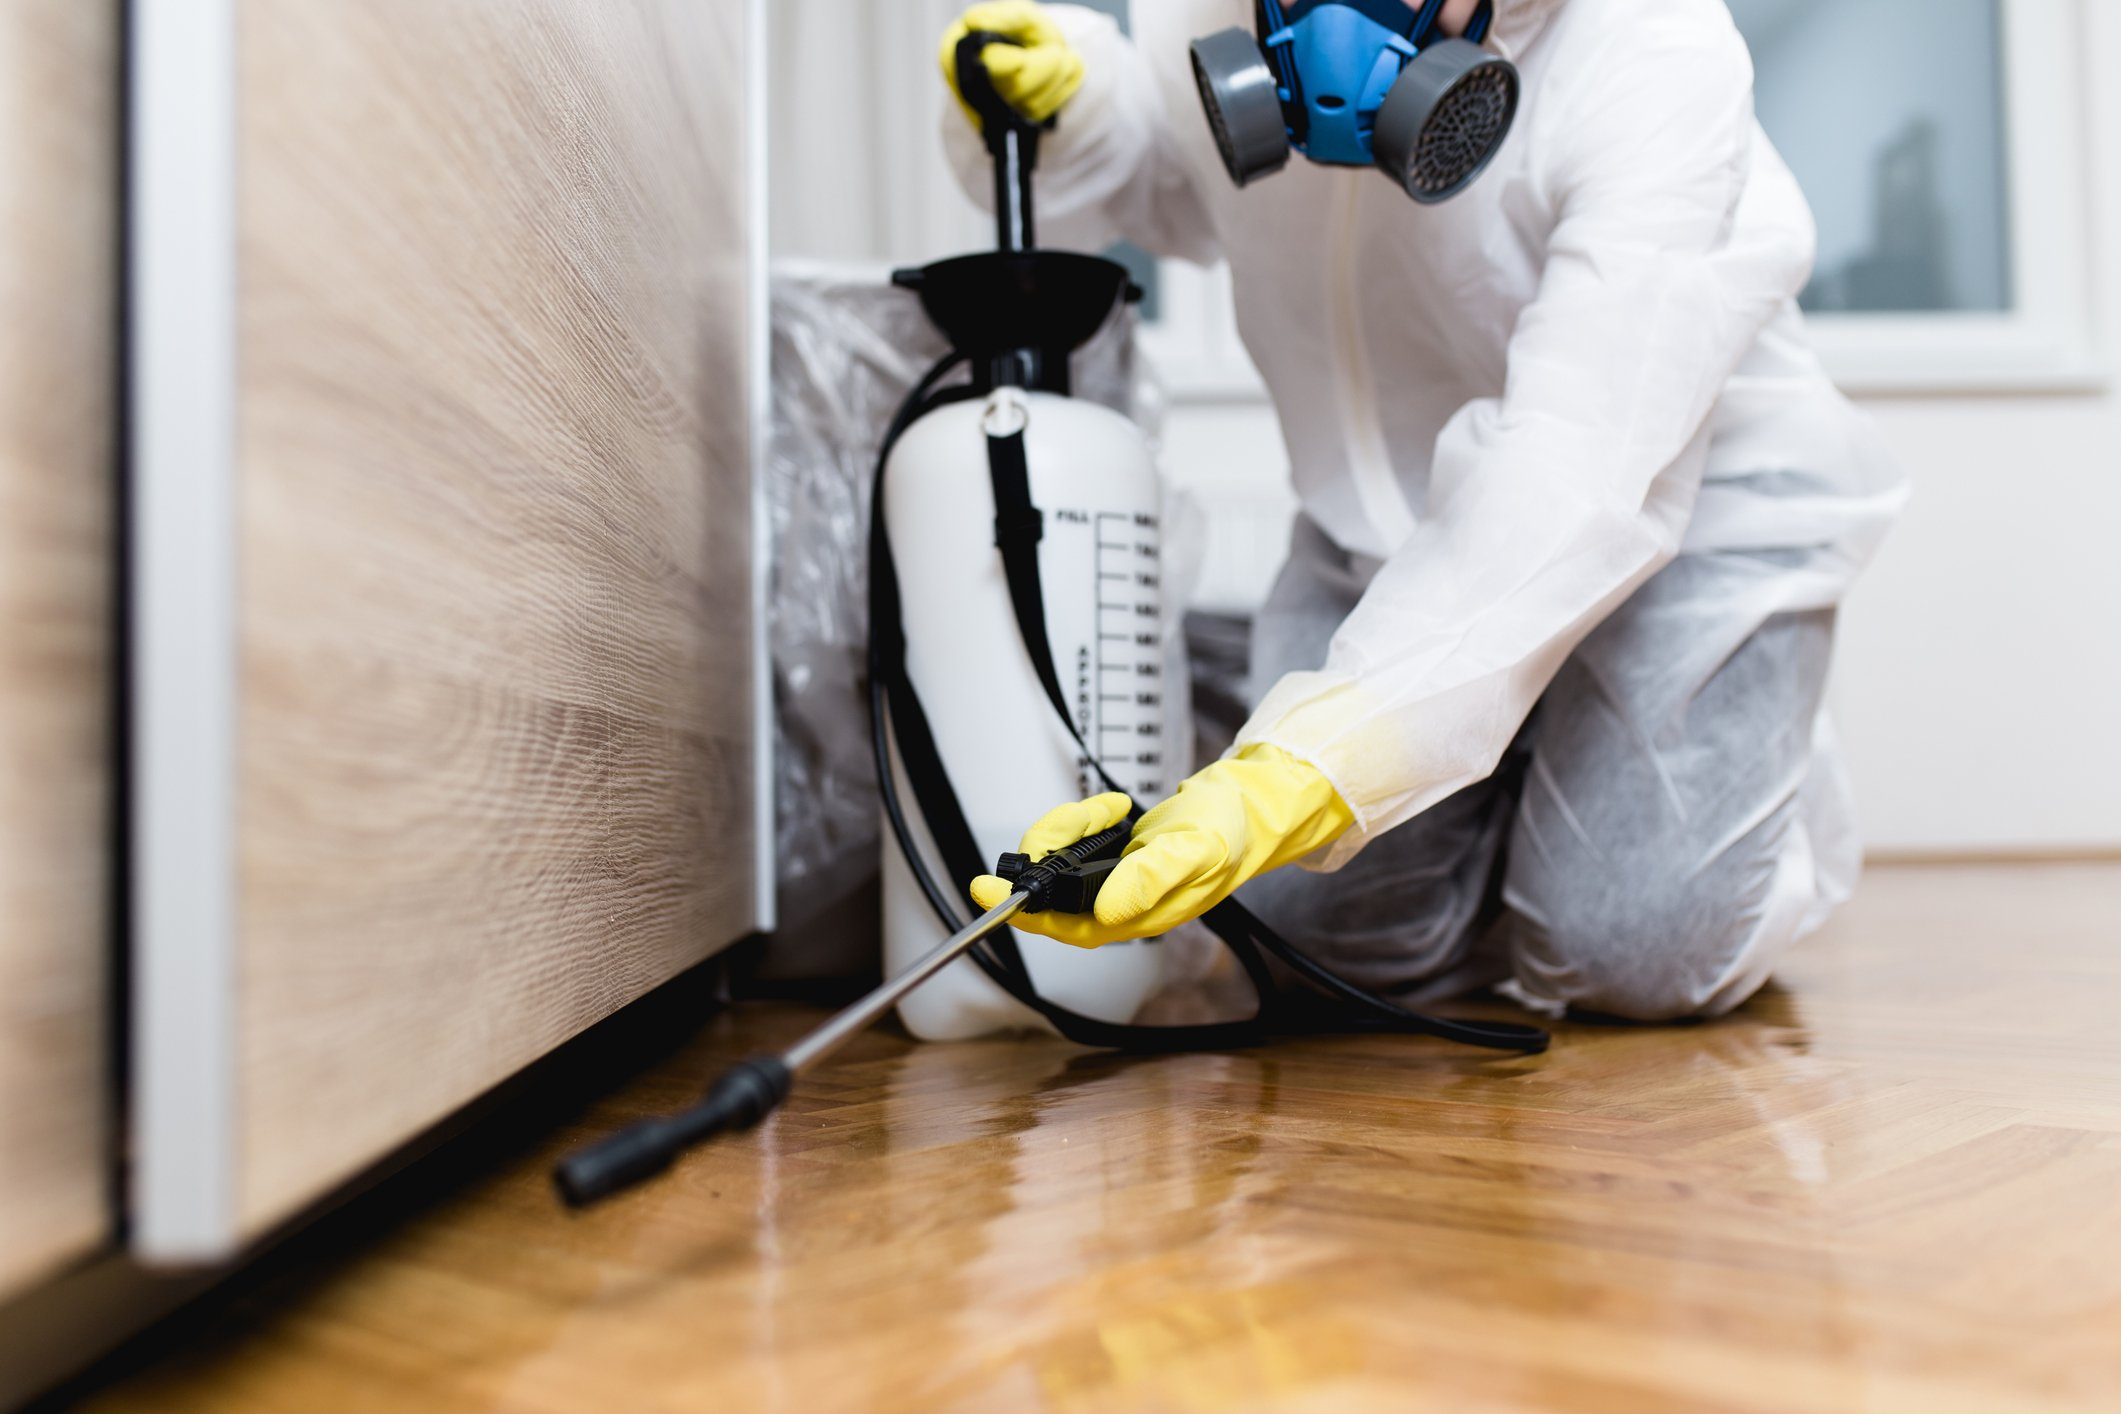 Photo of an exterminator in work wear spraying pesticide or insecticide with sprayer | Photo: Getty Images